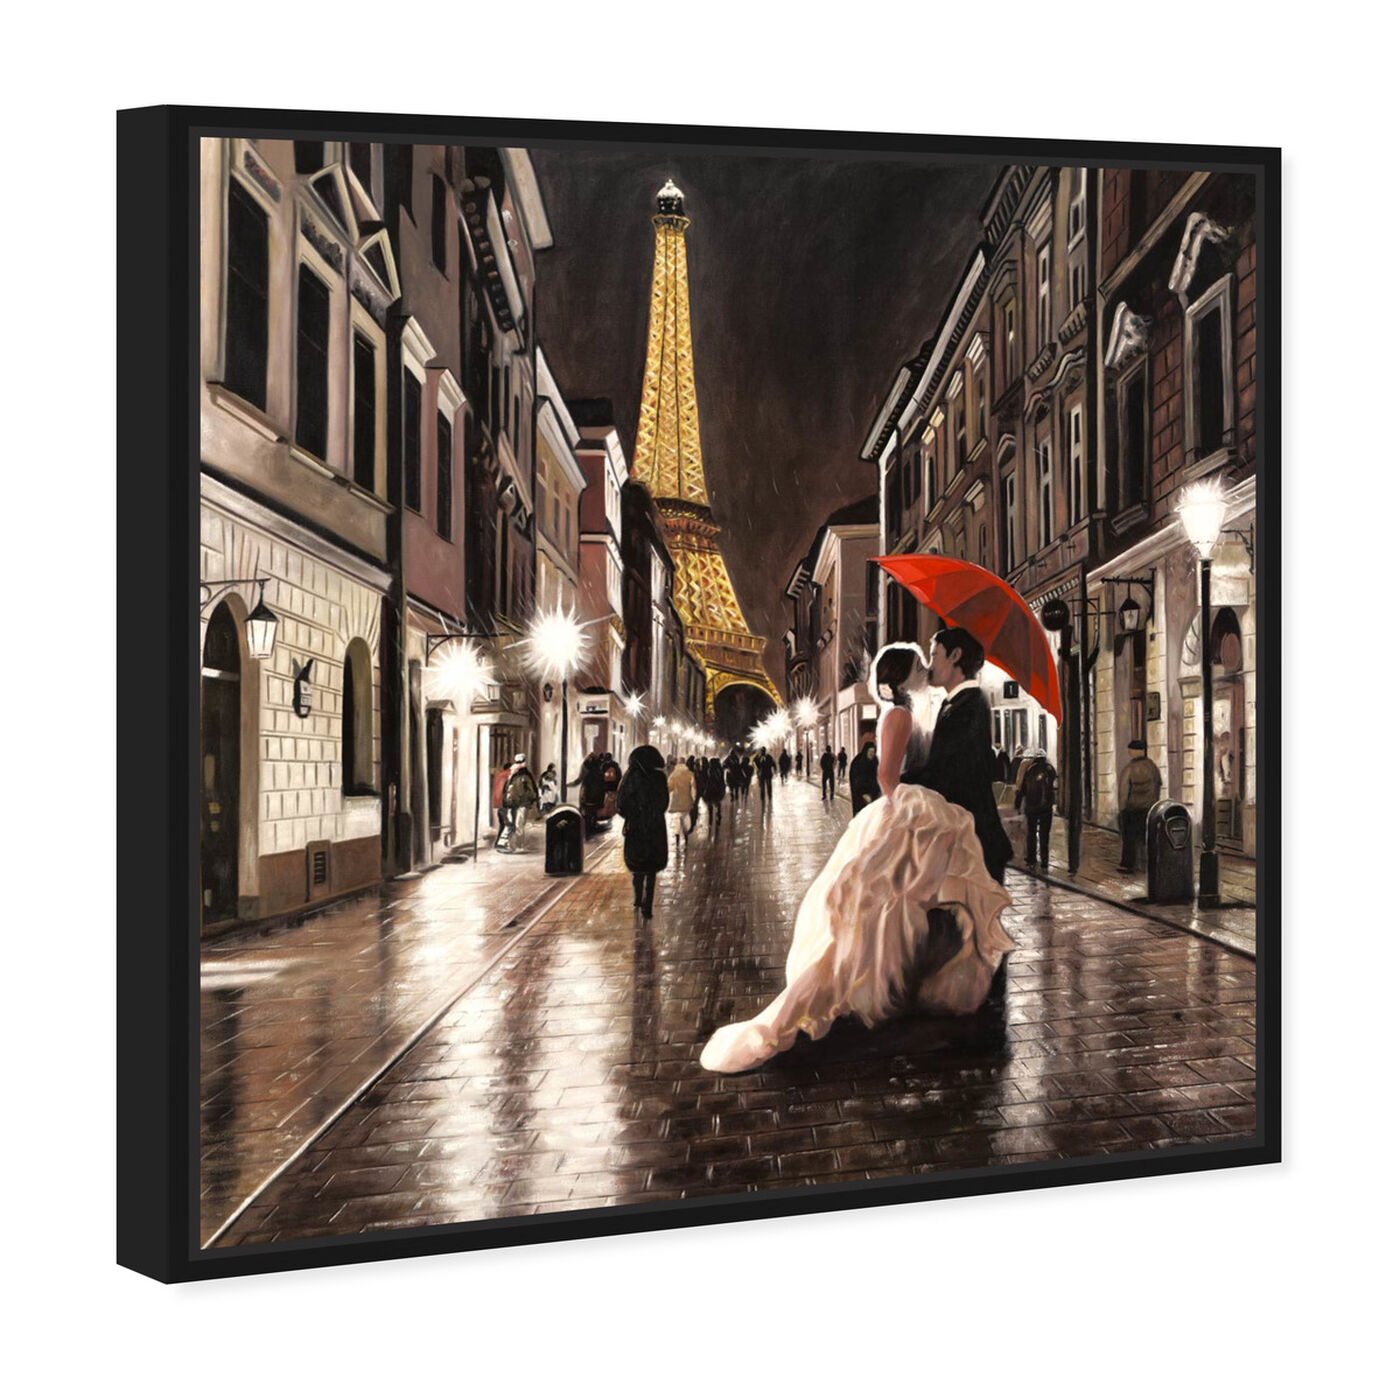 Angled view of Sai - Passion Rue 1BN2574 featuring cities and skylines and european cities art.